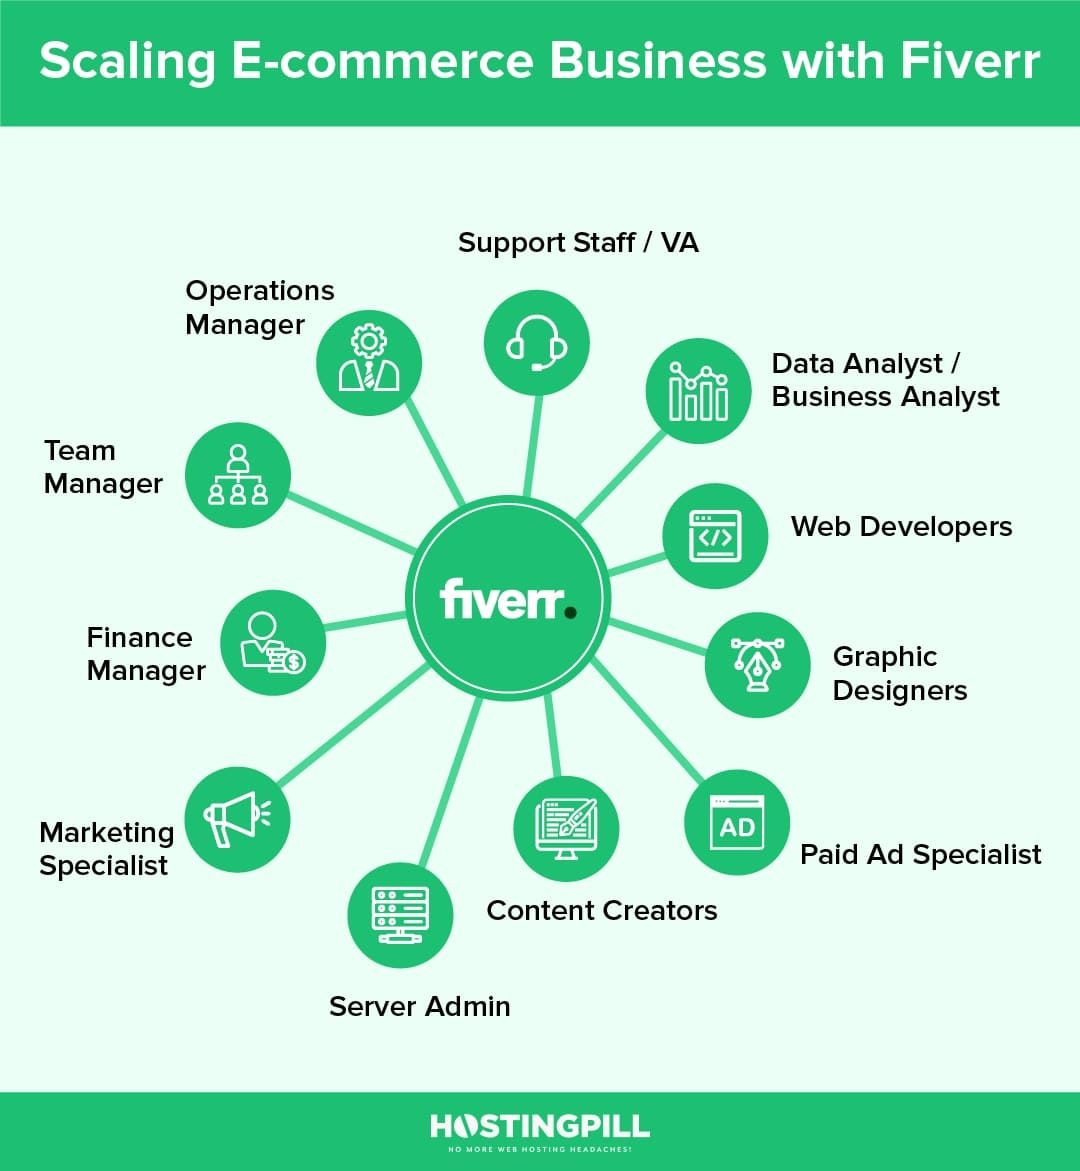 Scaling E-commerce Business with Fiverr